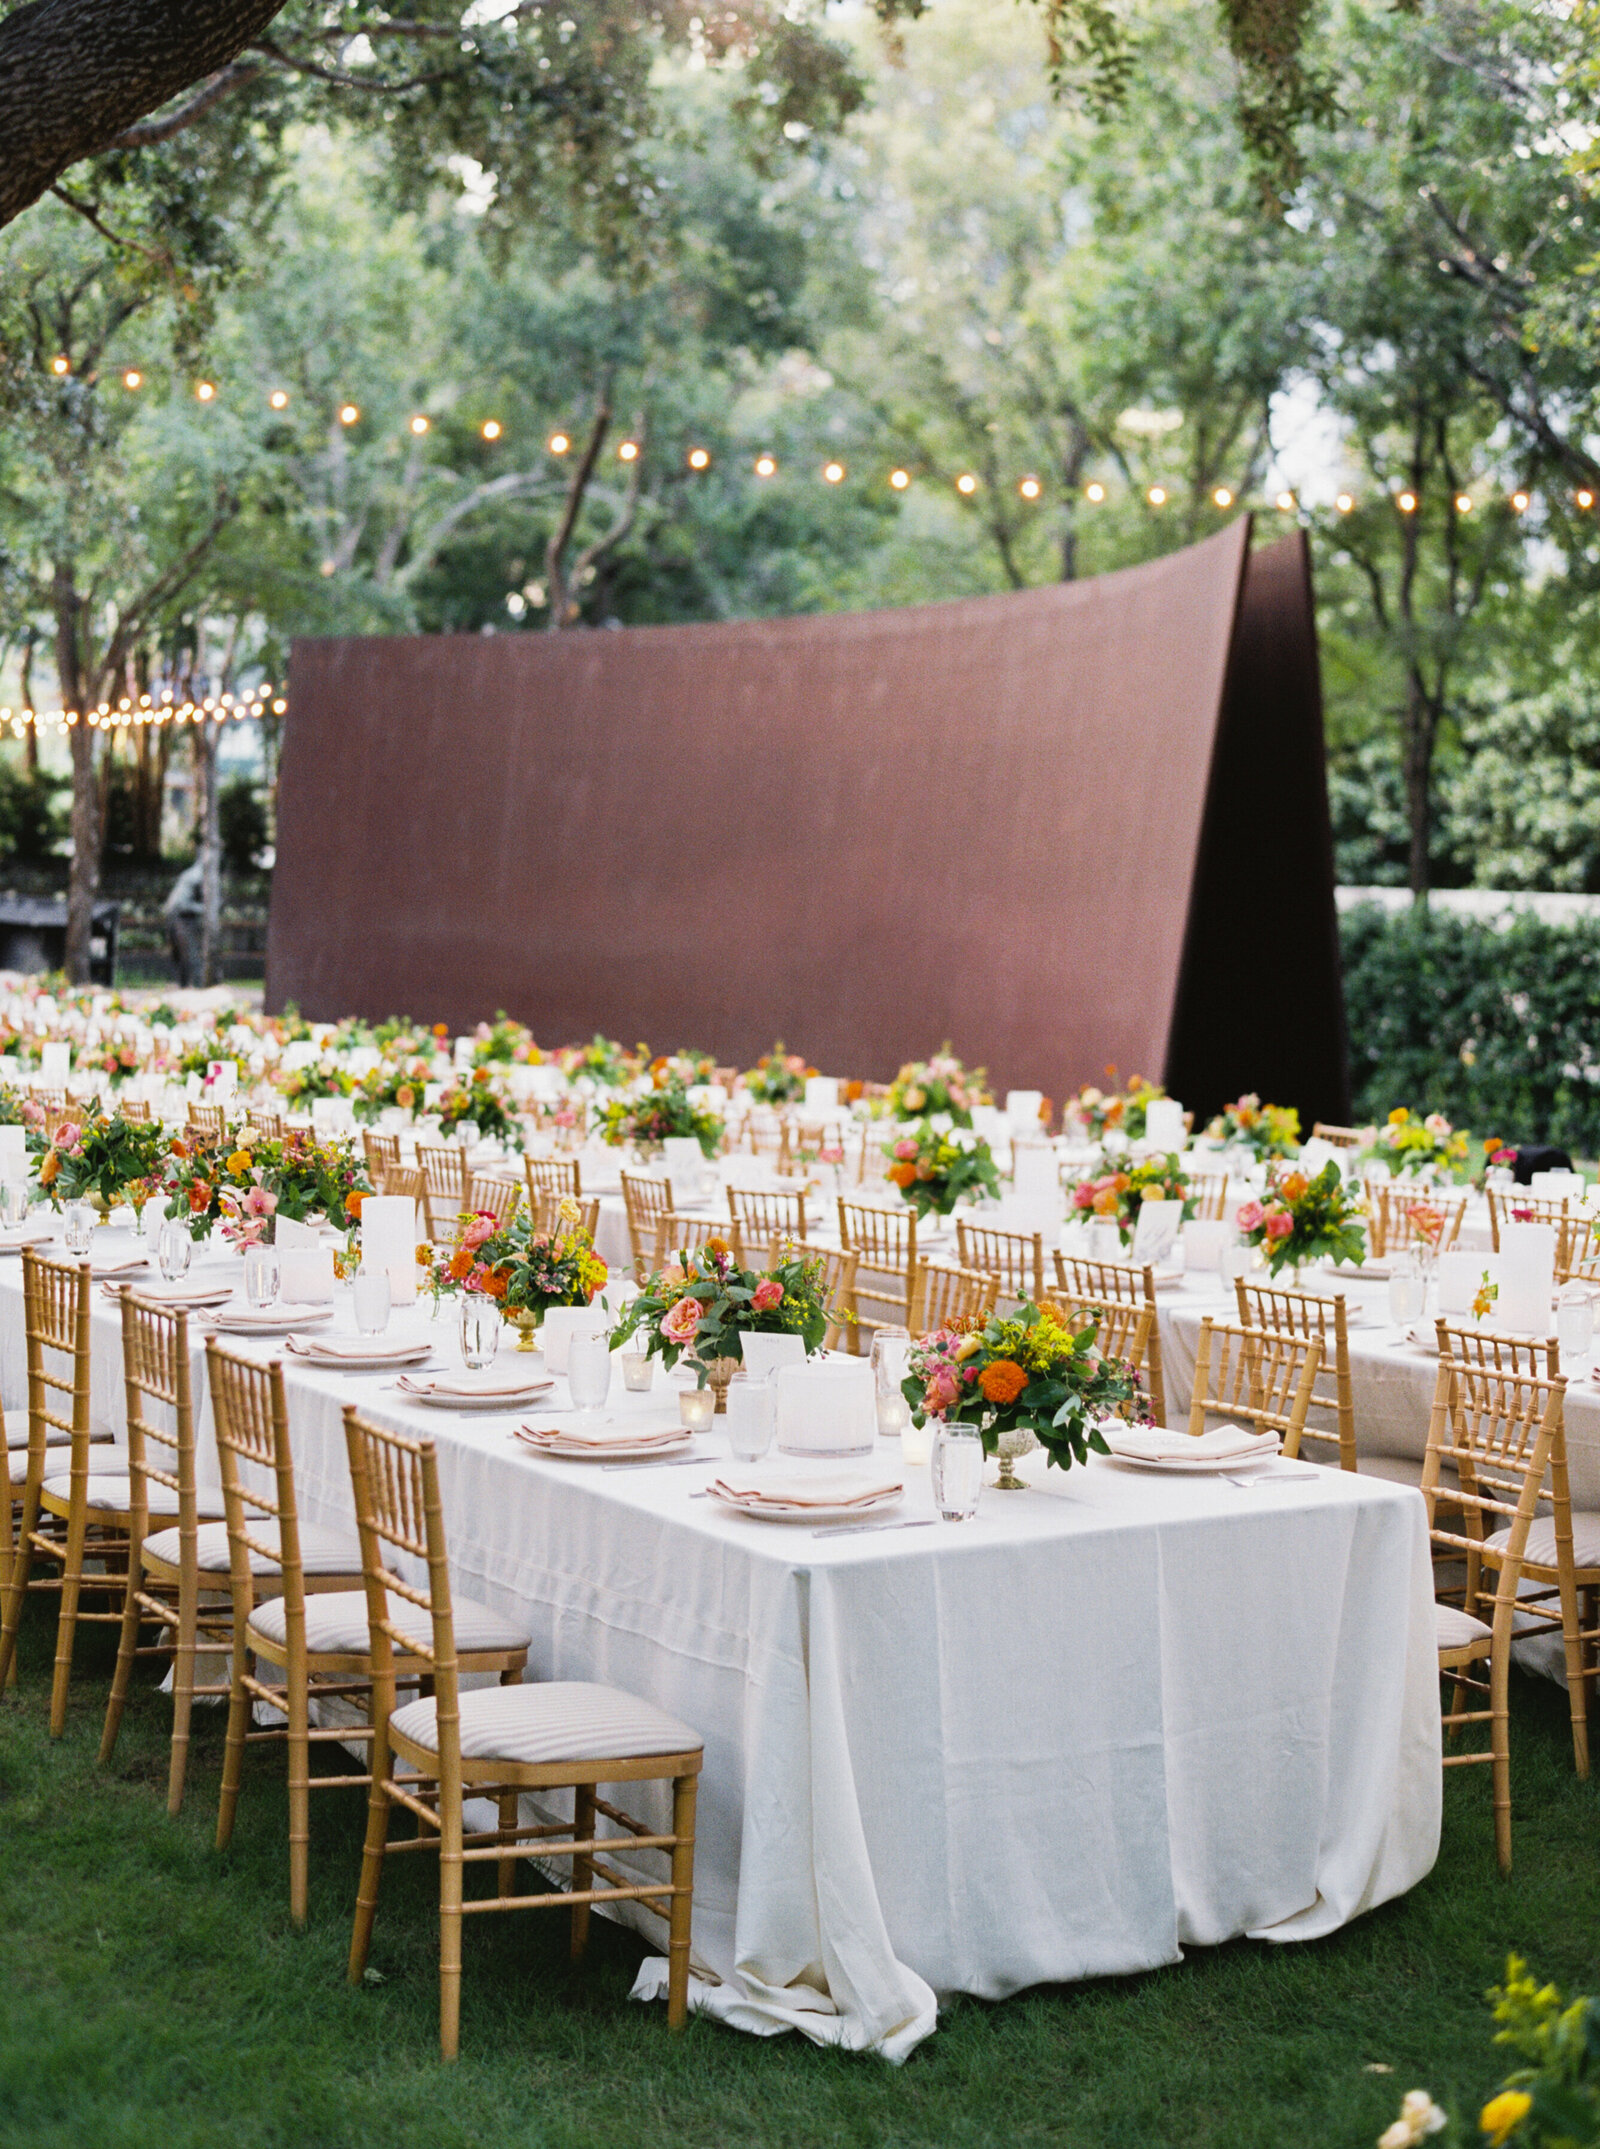 joshua aull photography dallas wedding photographer_0031